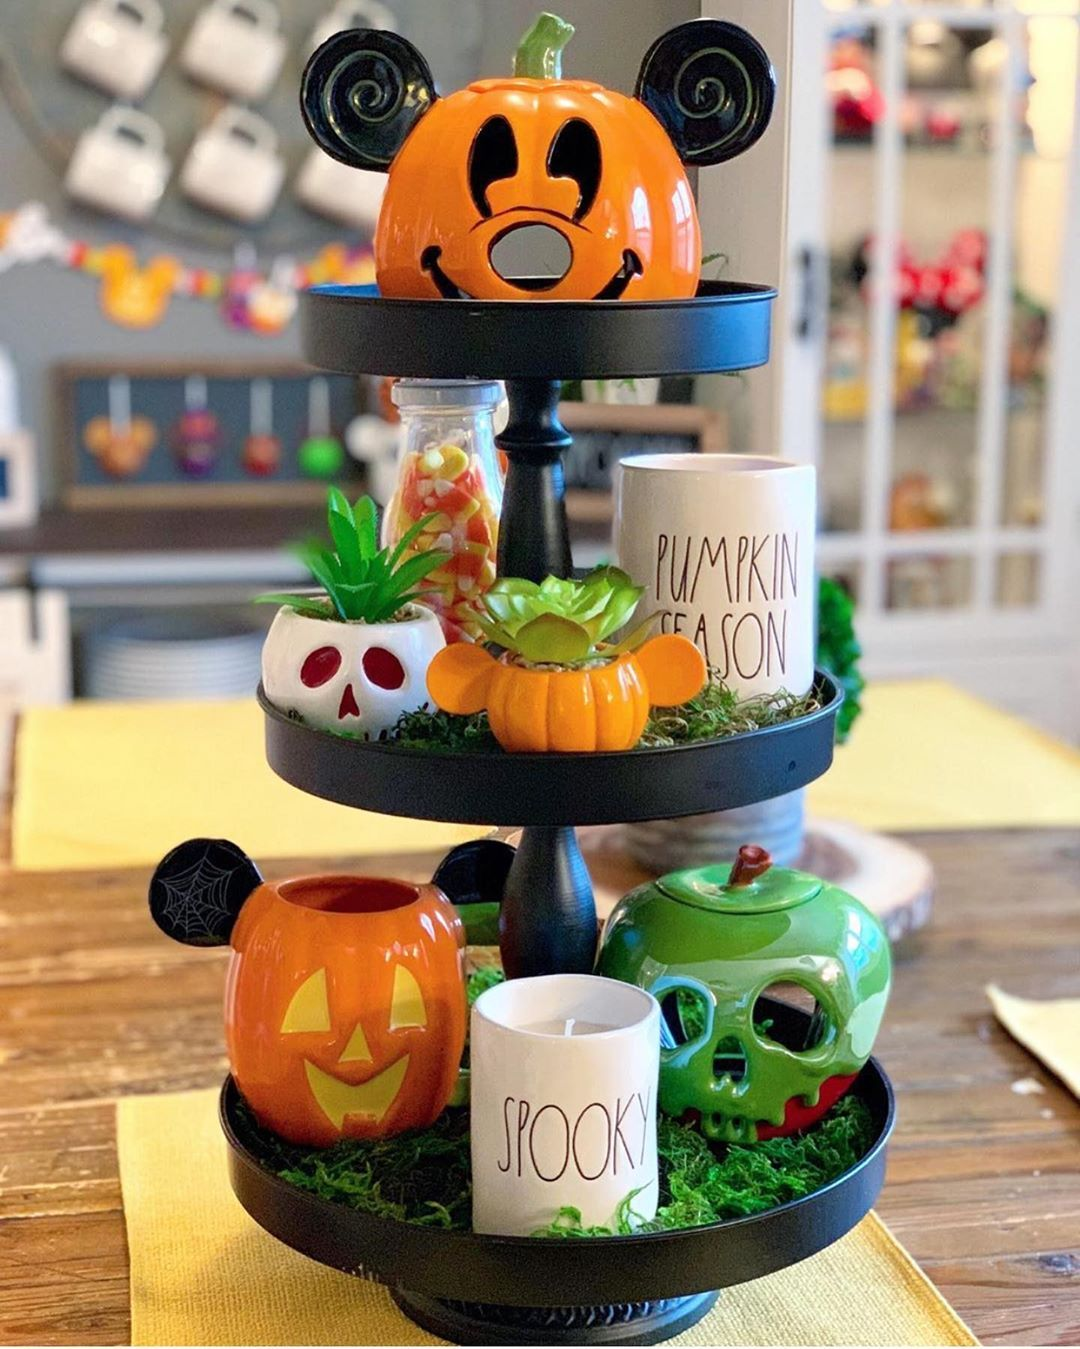 "Disney At Home on Instagram: ""Loving our friend @greatcrafternoon's fall themed tier tray!!! The fall decor is starting to pour in and we're so excited!! Be sure to send…"""